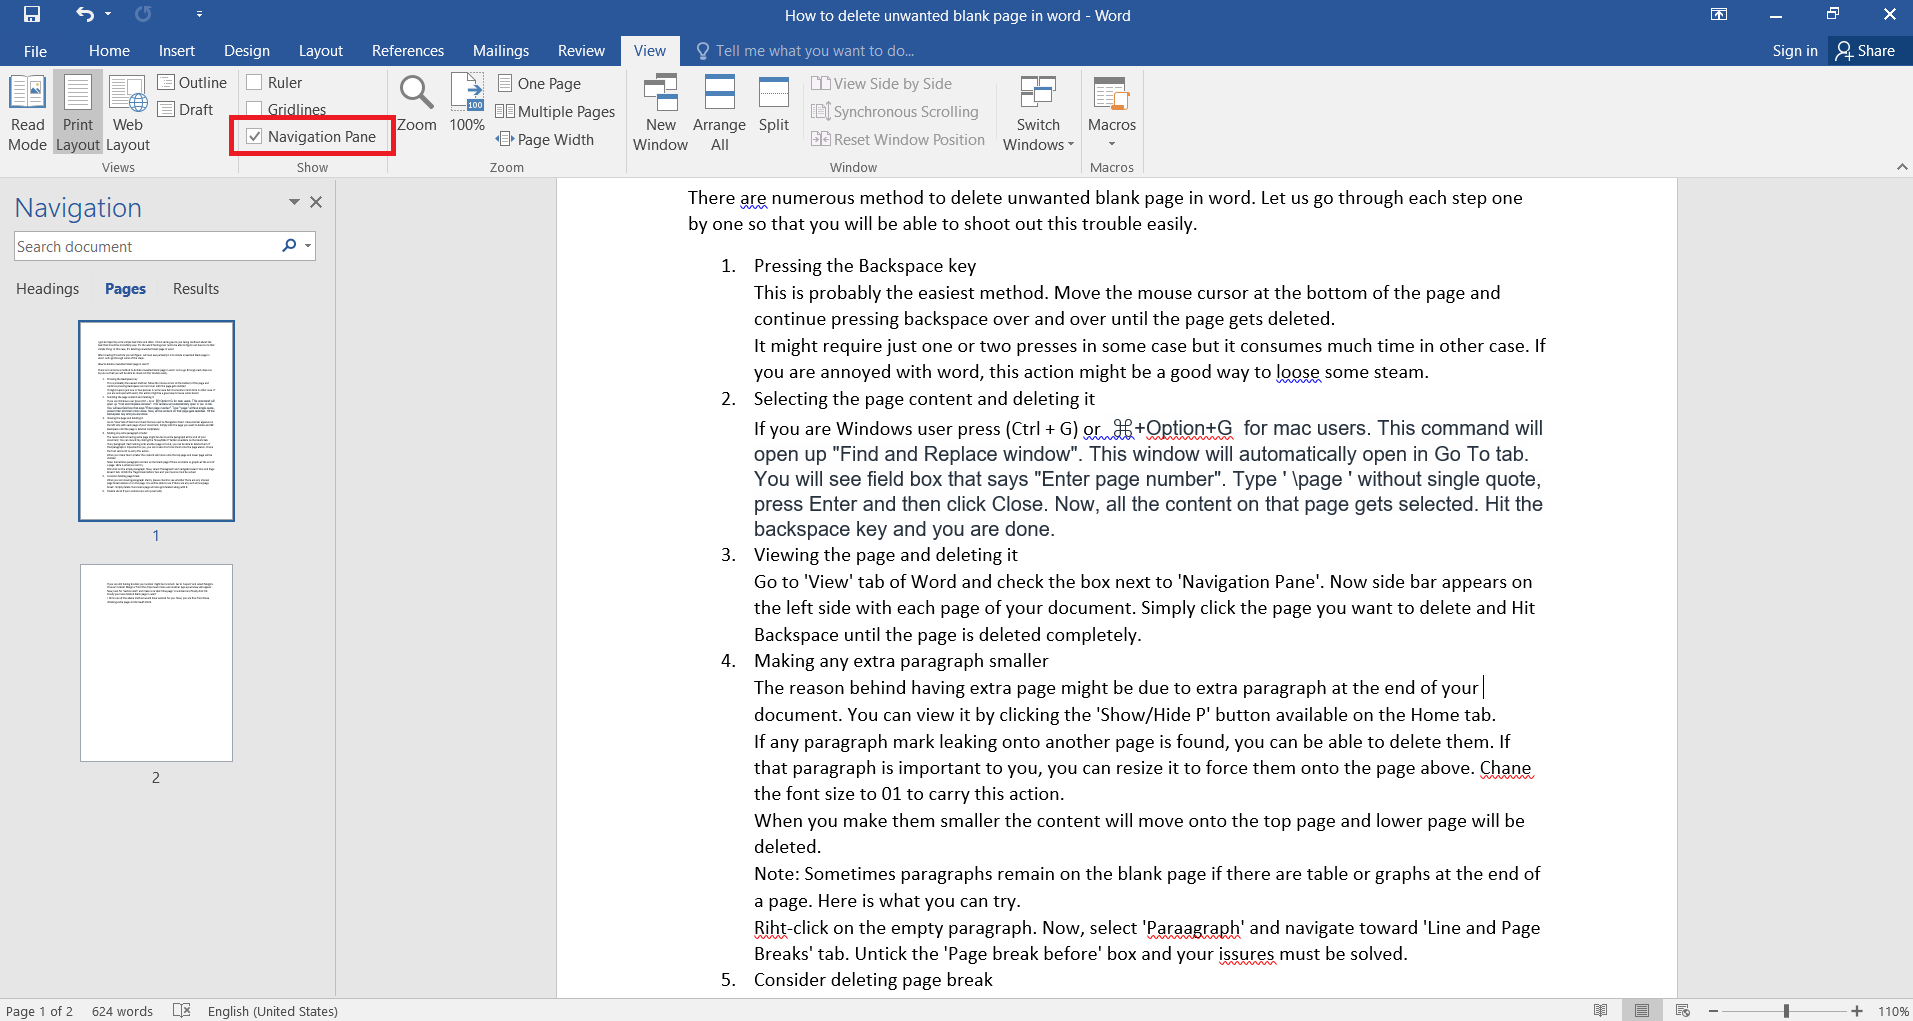 6 Amazing ways to delete unwanted blank page in word within a second. -  Technical Aide